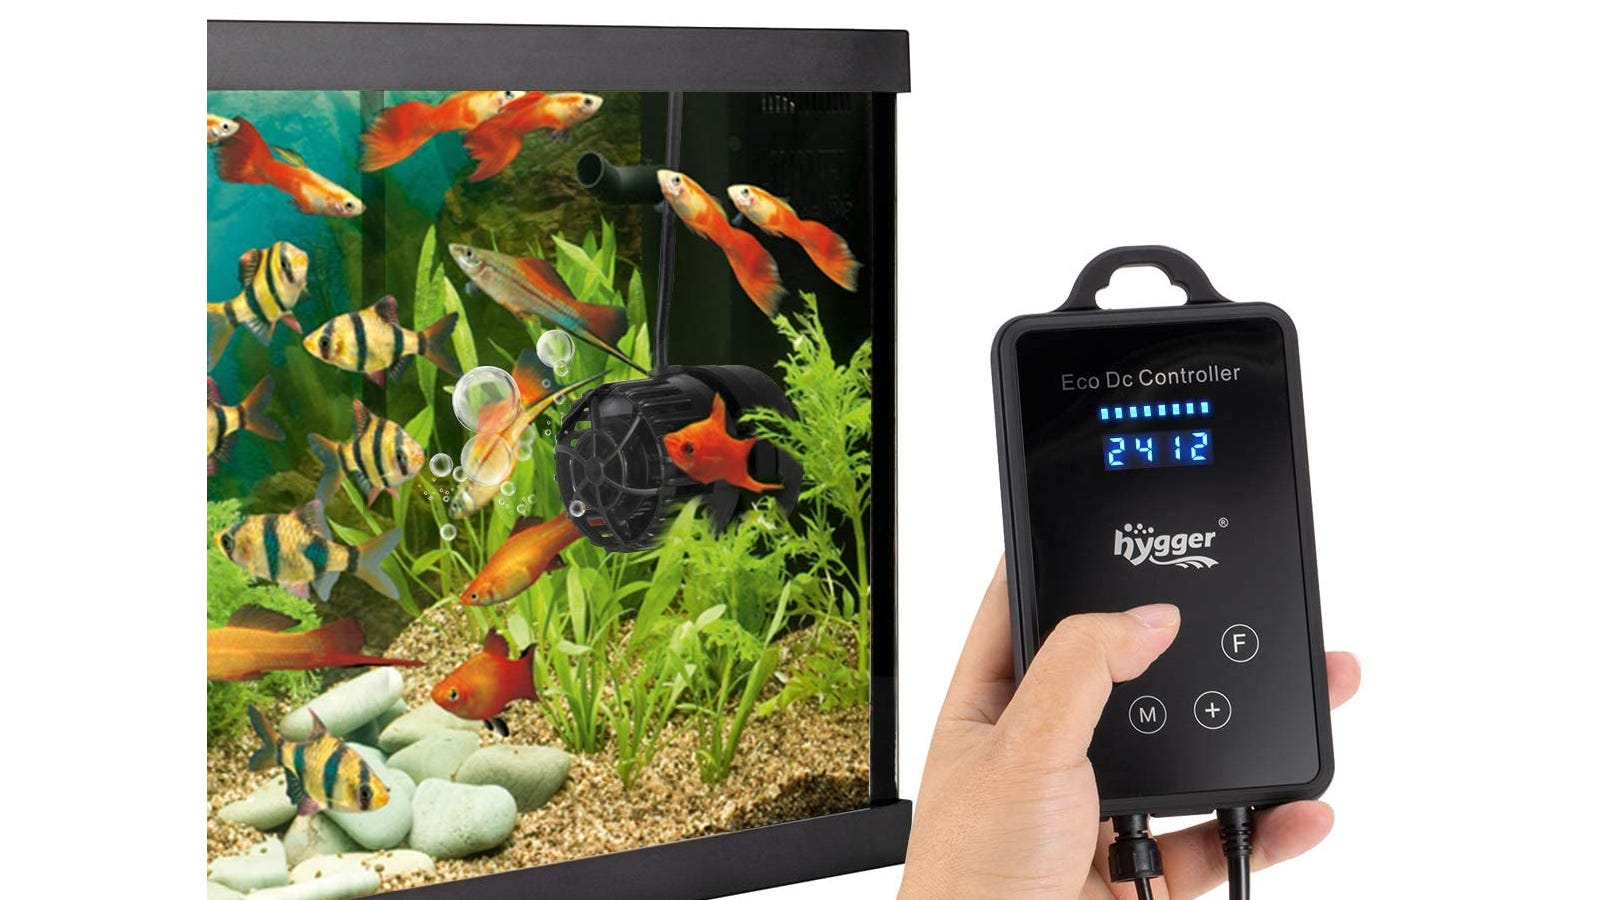 External control with lit-up LED display being used with a tank full of colorful fish.